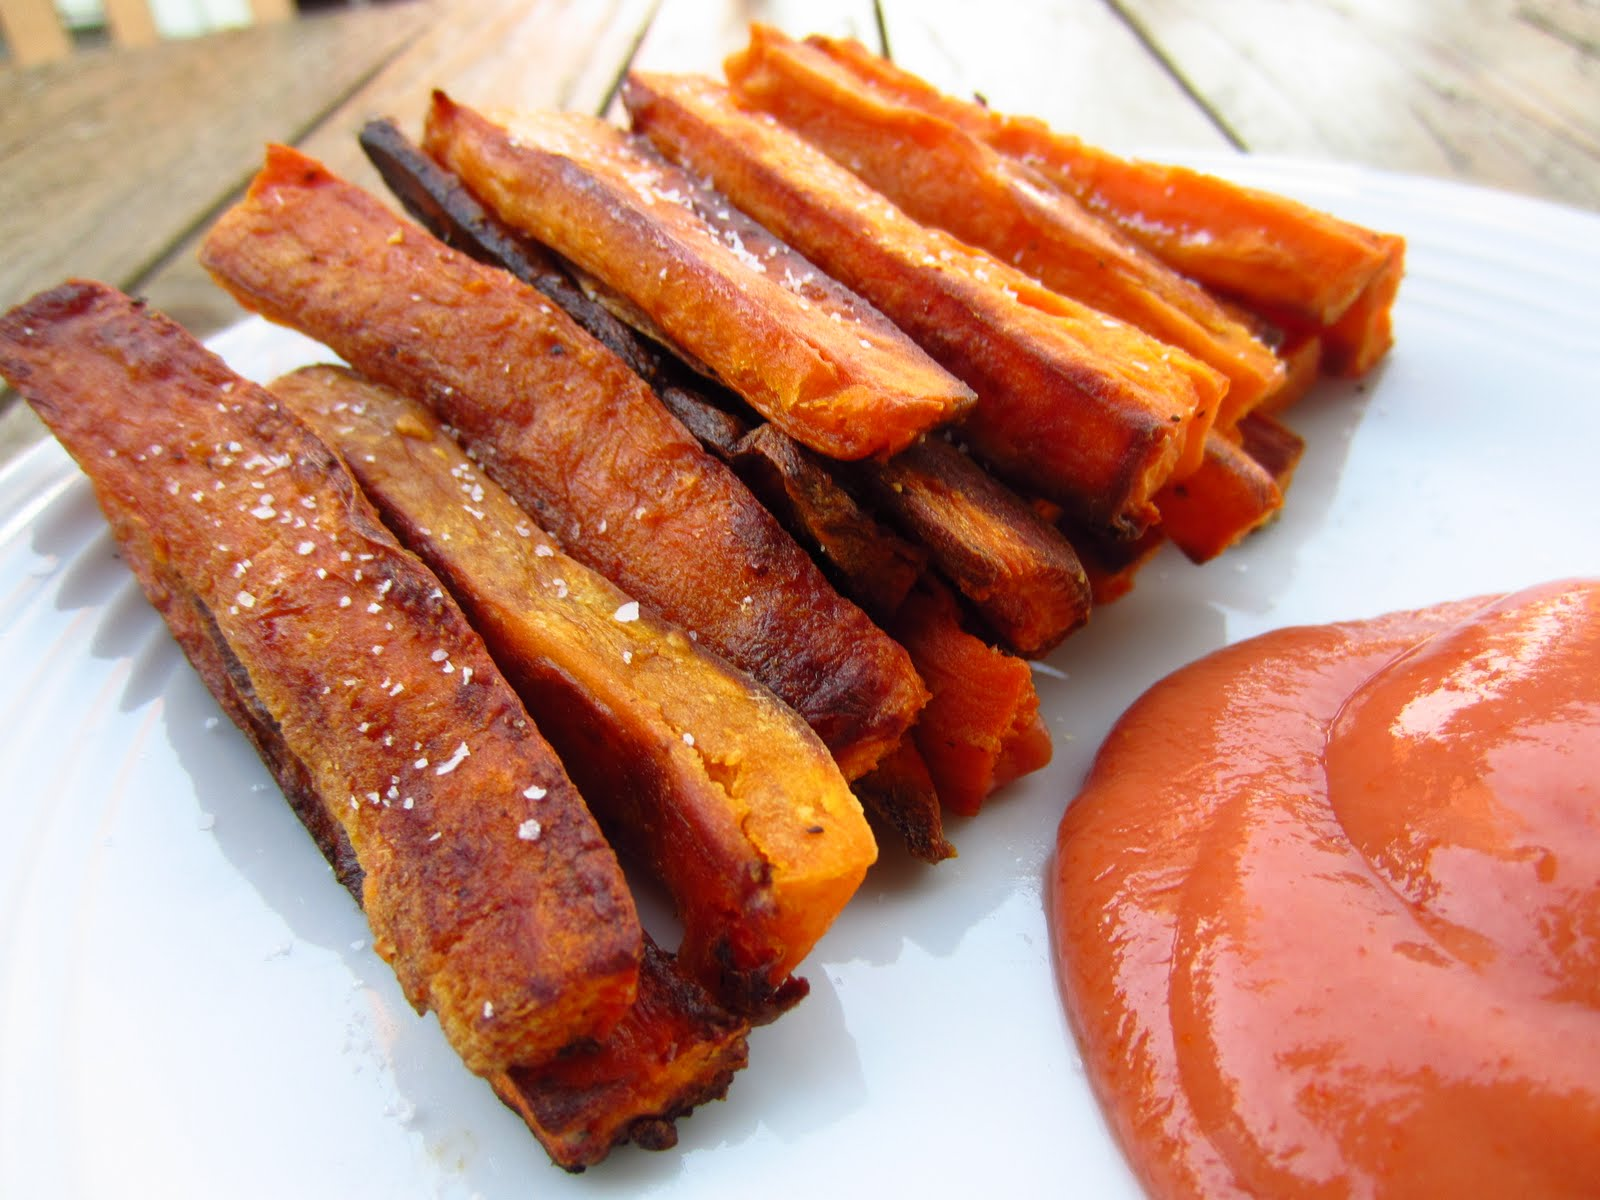 ... Free Blondie: Recipe: Baked Sweet Potato Fries with Spicy Ketchup